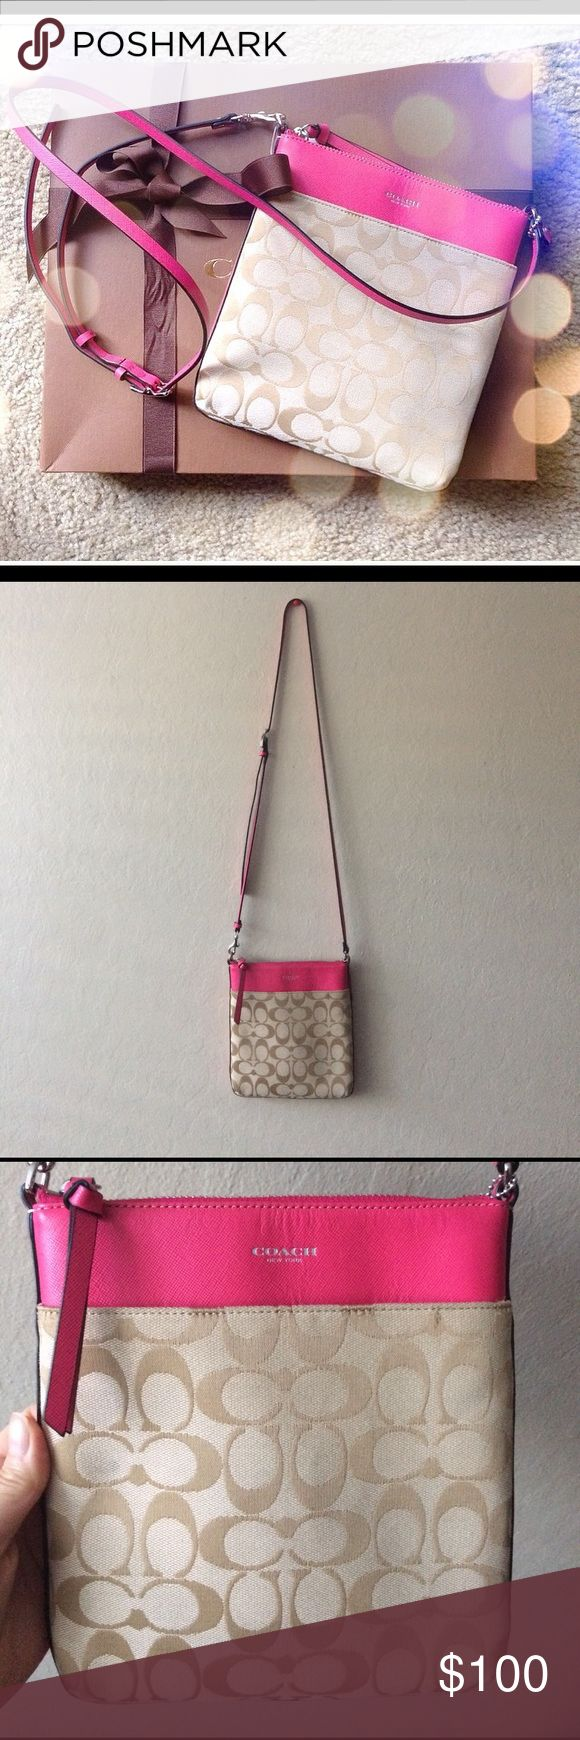 2014 Coach Cross Body Purse Cute and fun pink cross body bag. One pocket in the front and two pocket on the inside. Bag was purchased in May 2014. Tarnish metal but can't tell unless inspected up close. No box or dust bag. One flaw: light black stain shown in the picture above. Barely noticeable. Coach Bags Crossbody Bags